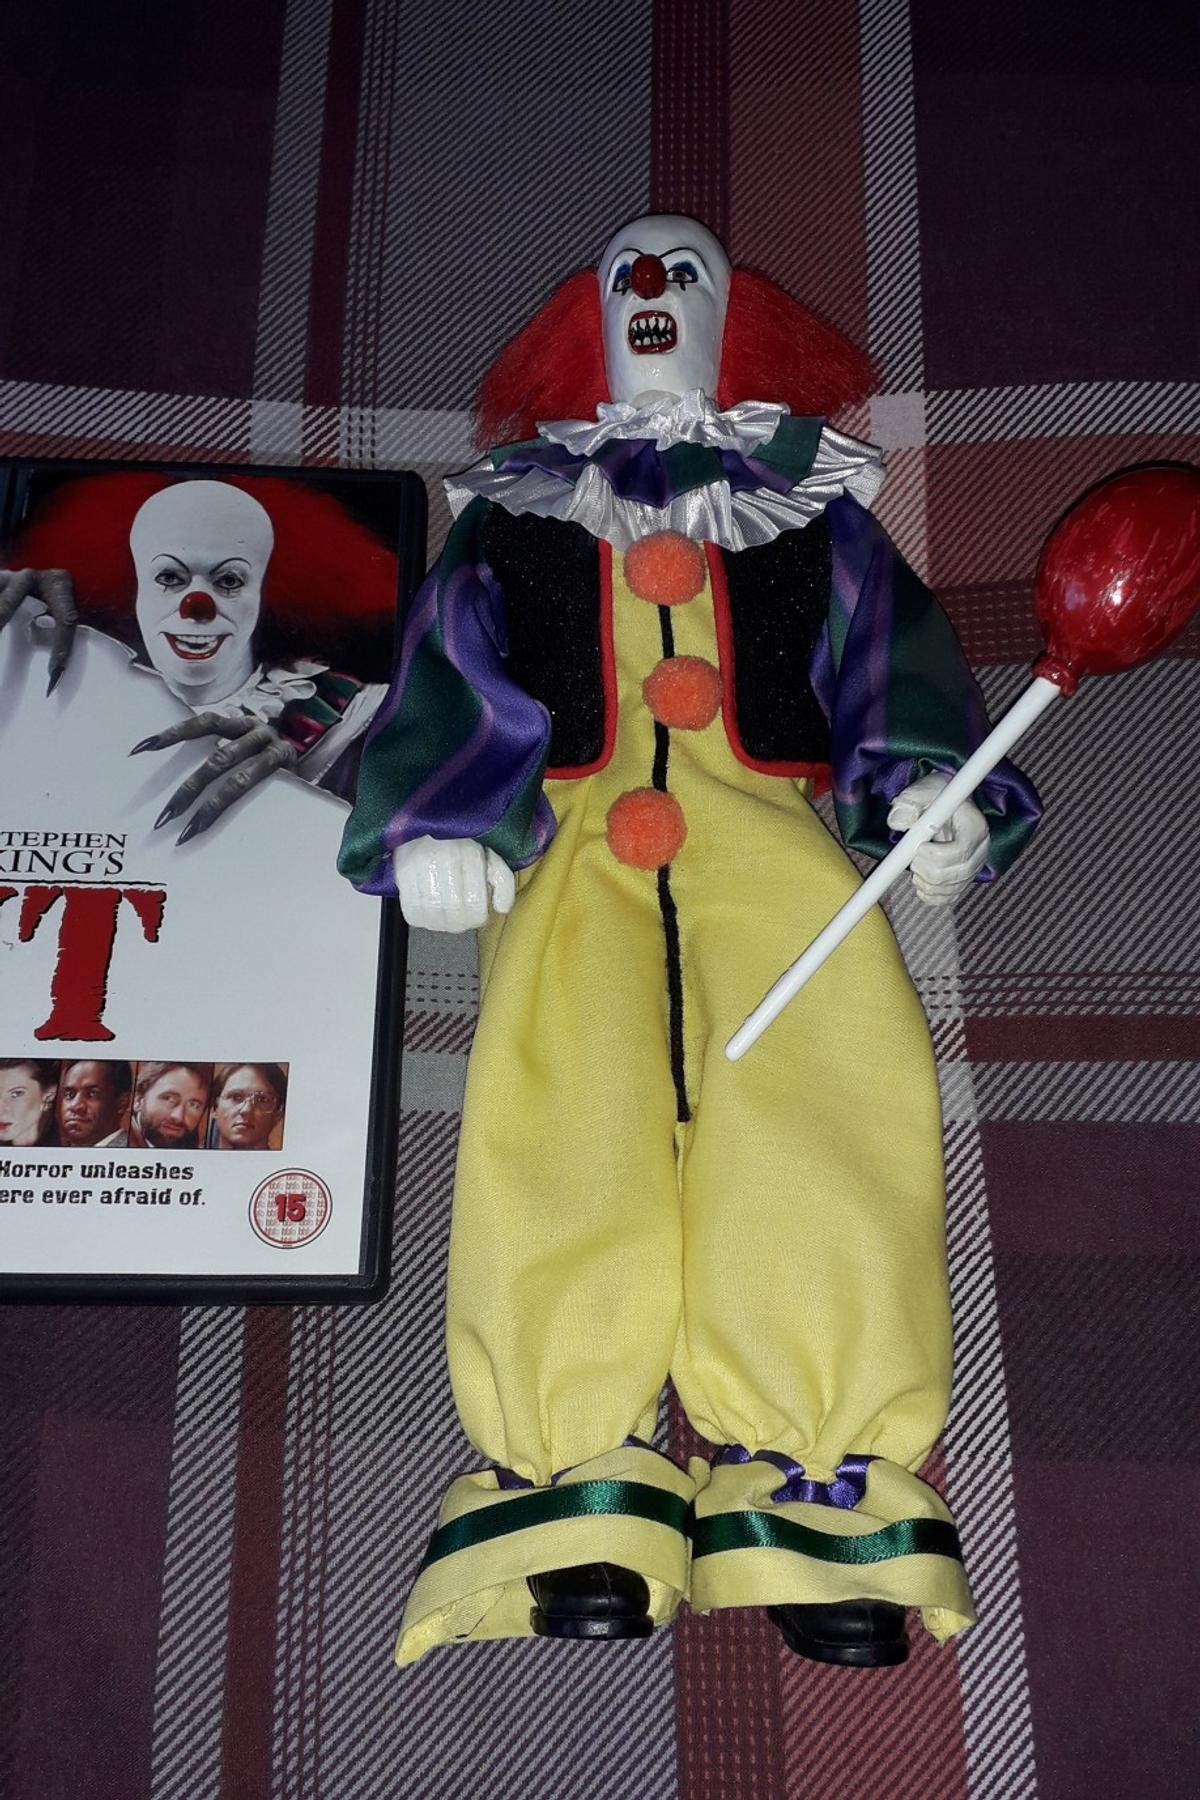 IT Pennywise Custom Figure 12 Inch in Pentre Halkyn for